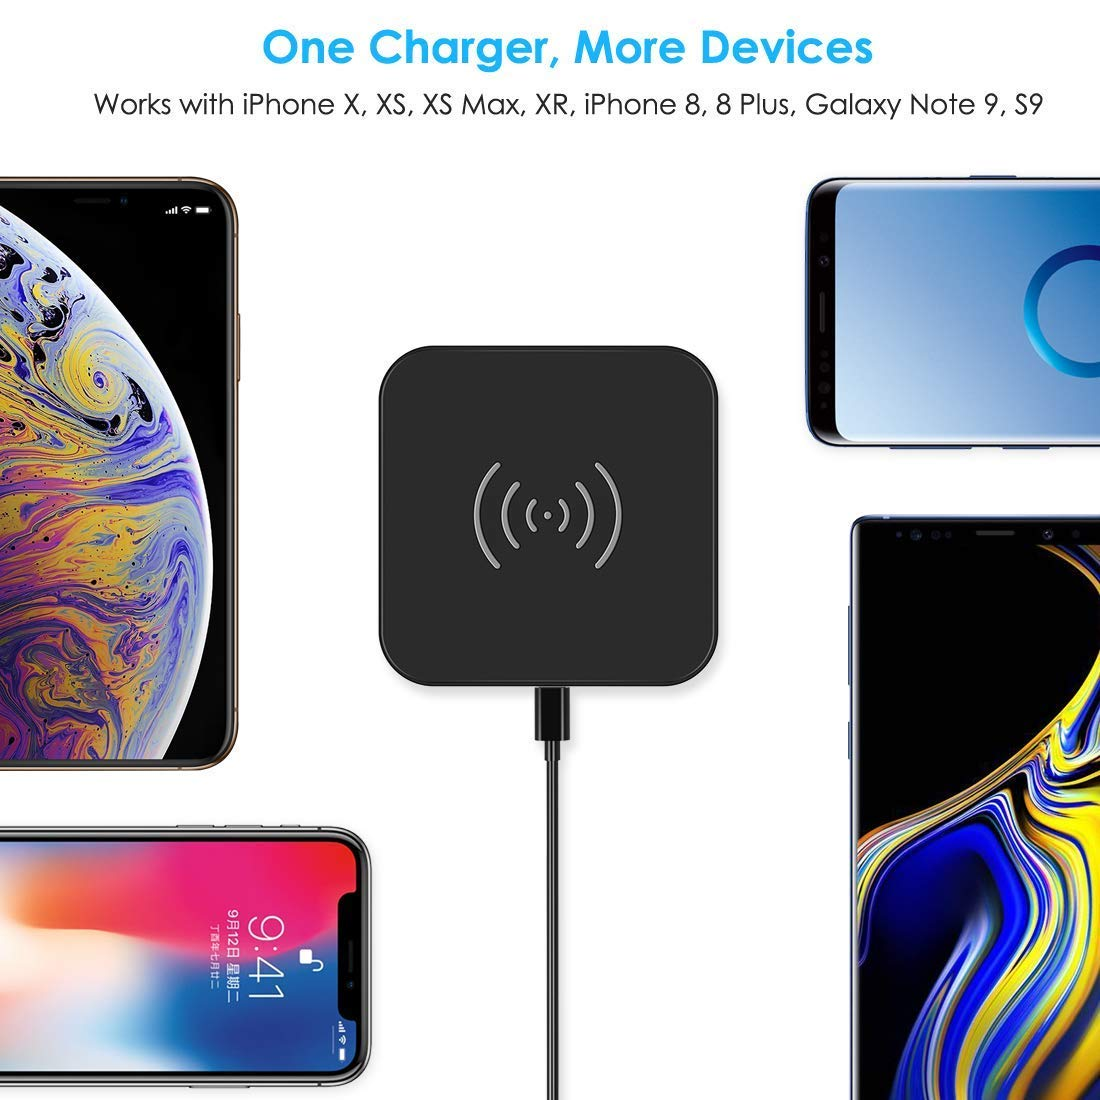 CHOETECH Wireless Charger, Qi Certified Wireless Charging Pad Compatible with iPhone Xs Max/XS/XR/X/8/8 Plus, Samsung Galaxy S10/S10+/S10E/Note 9/S9/S9+/Note 8/S8/S7, New AirPods and More by CHOETECH (Image #3)